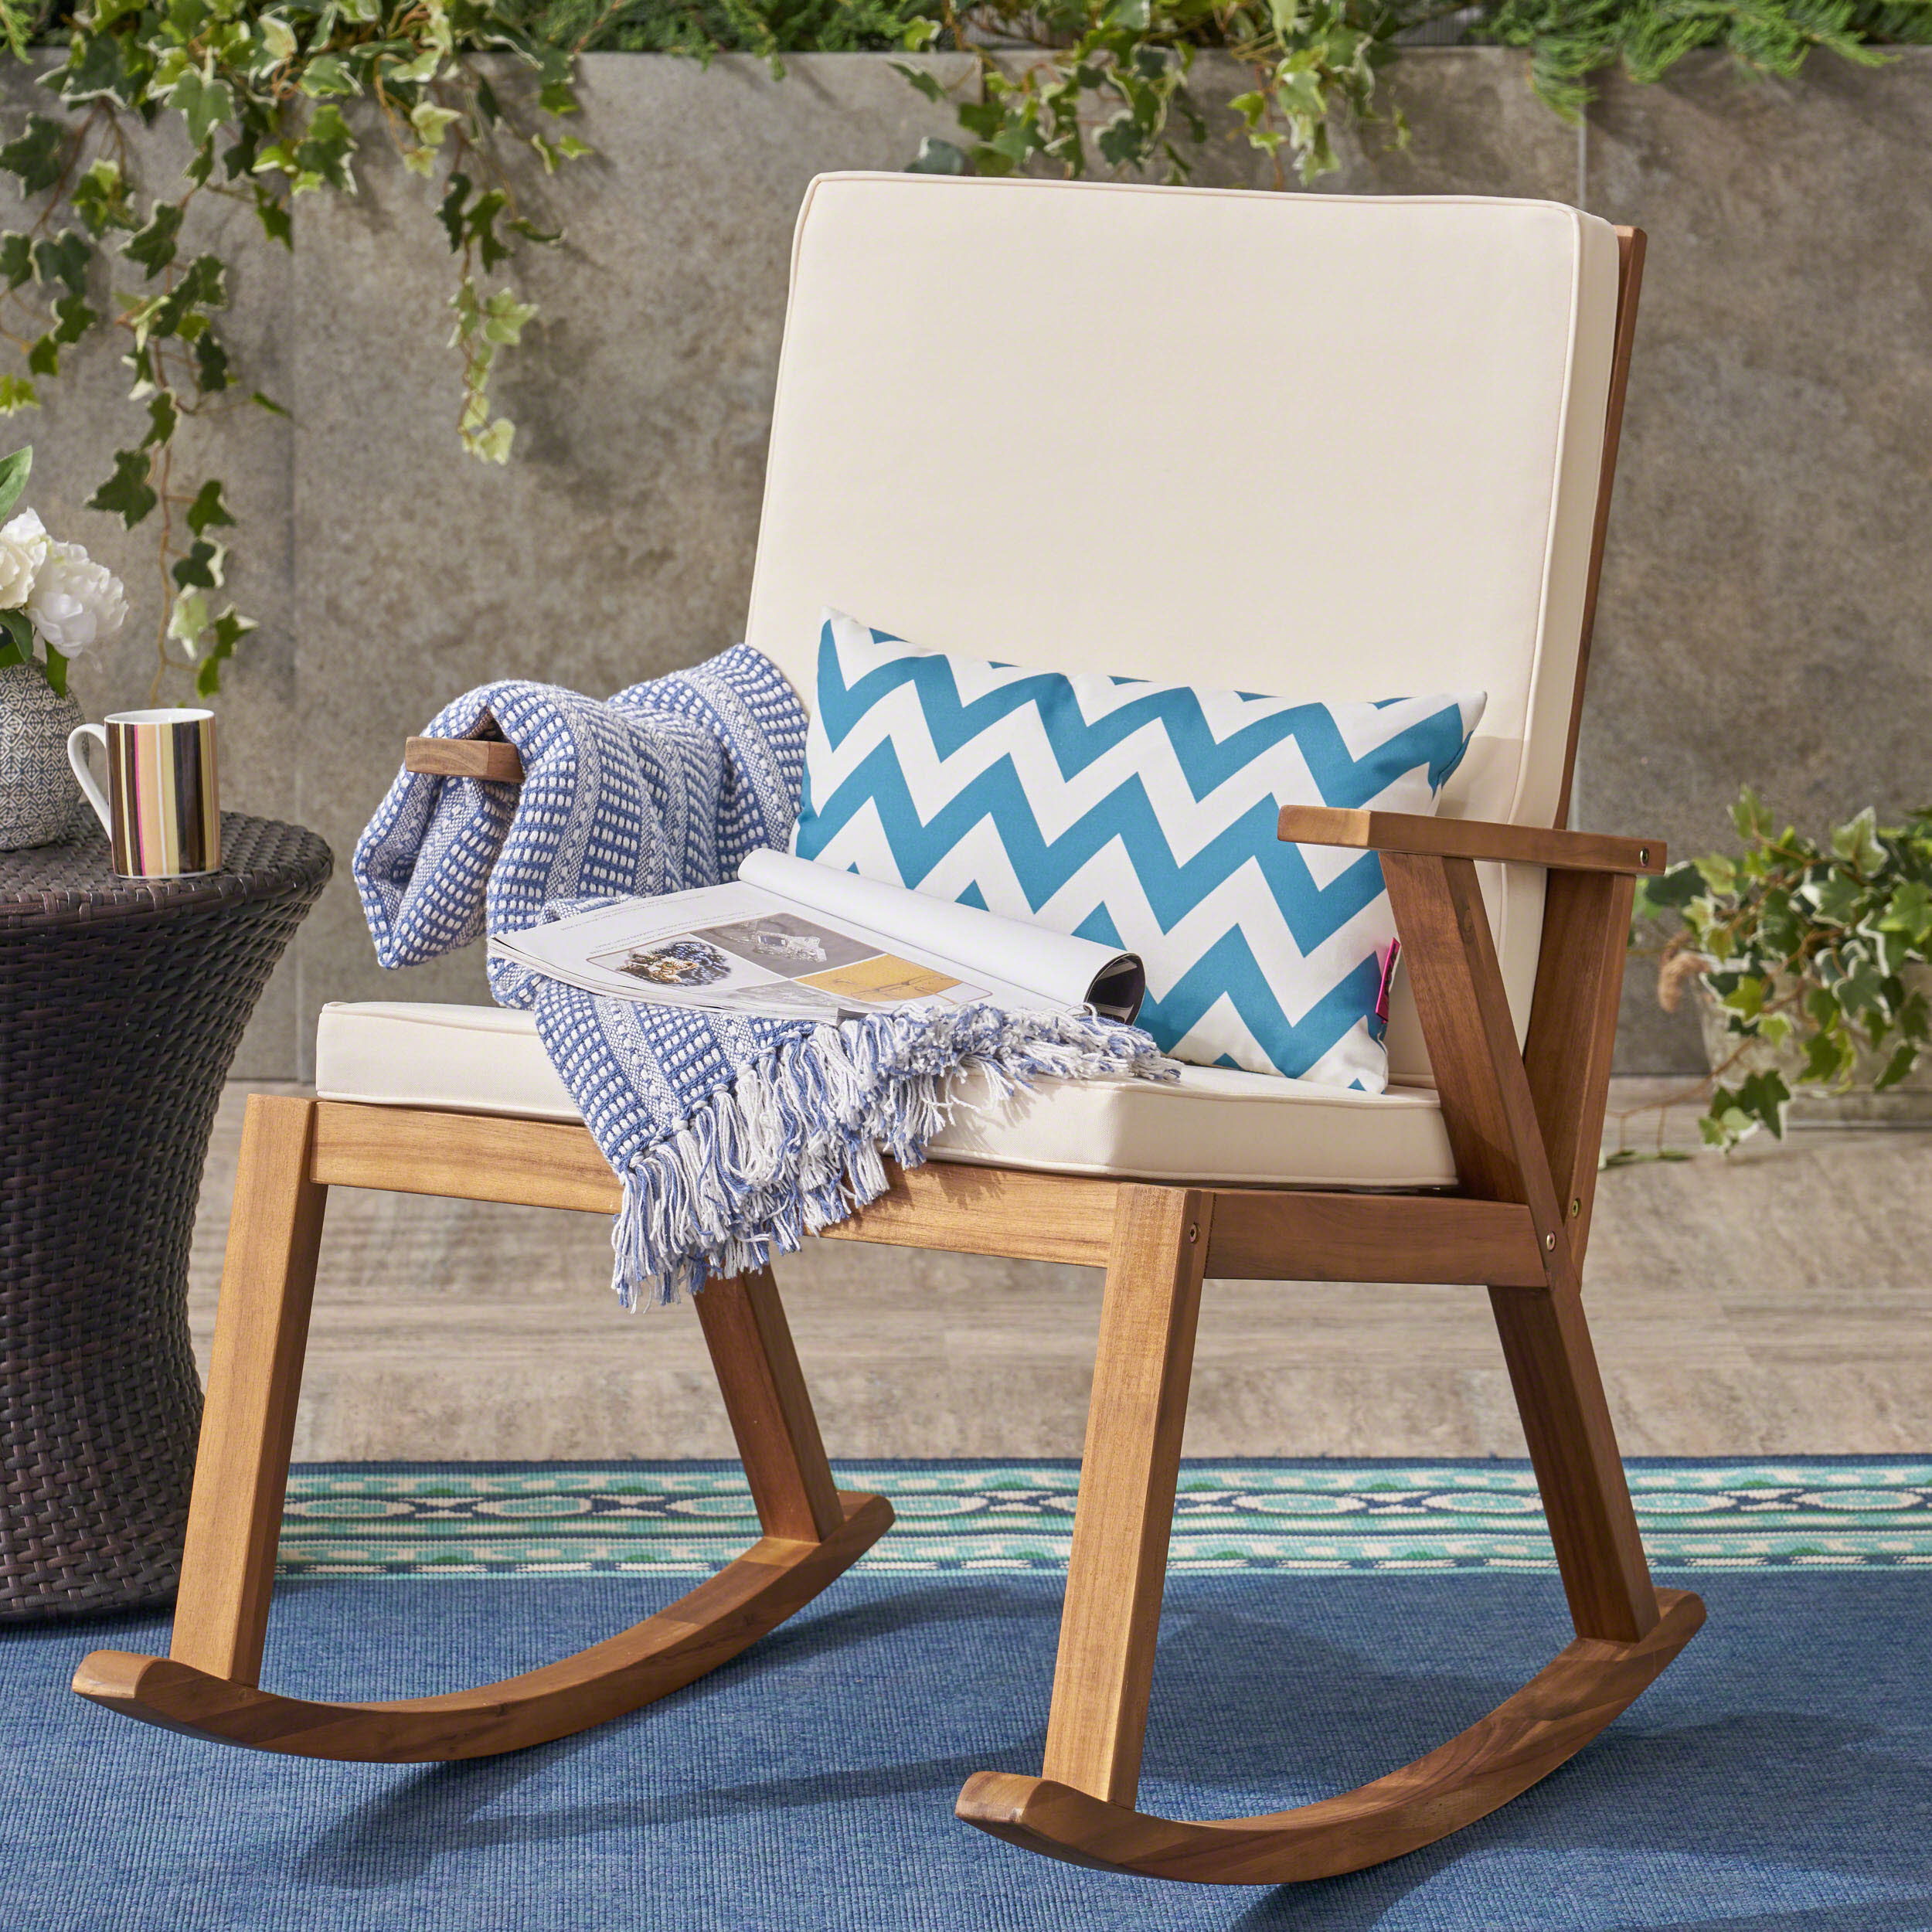 Outdoor Acacia Wood Rocking Chair, with Cushion, Teak,Cream